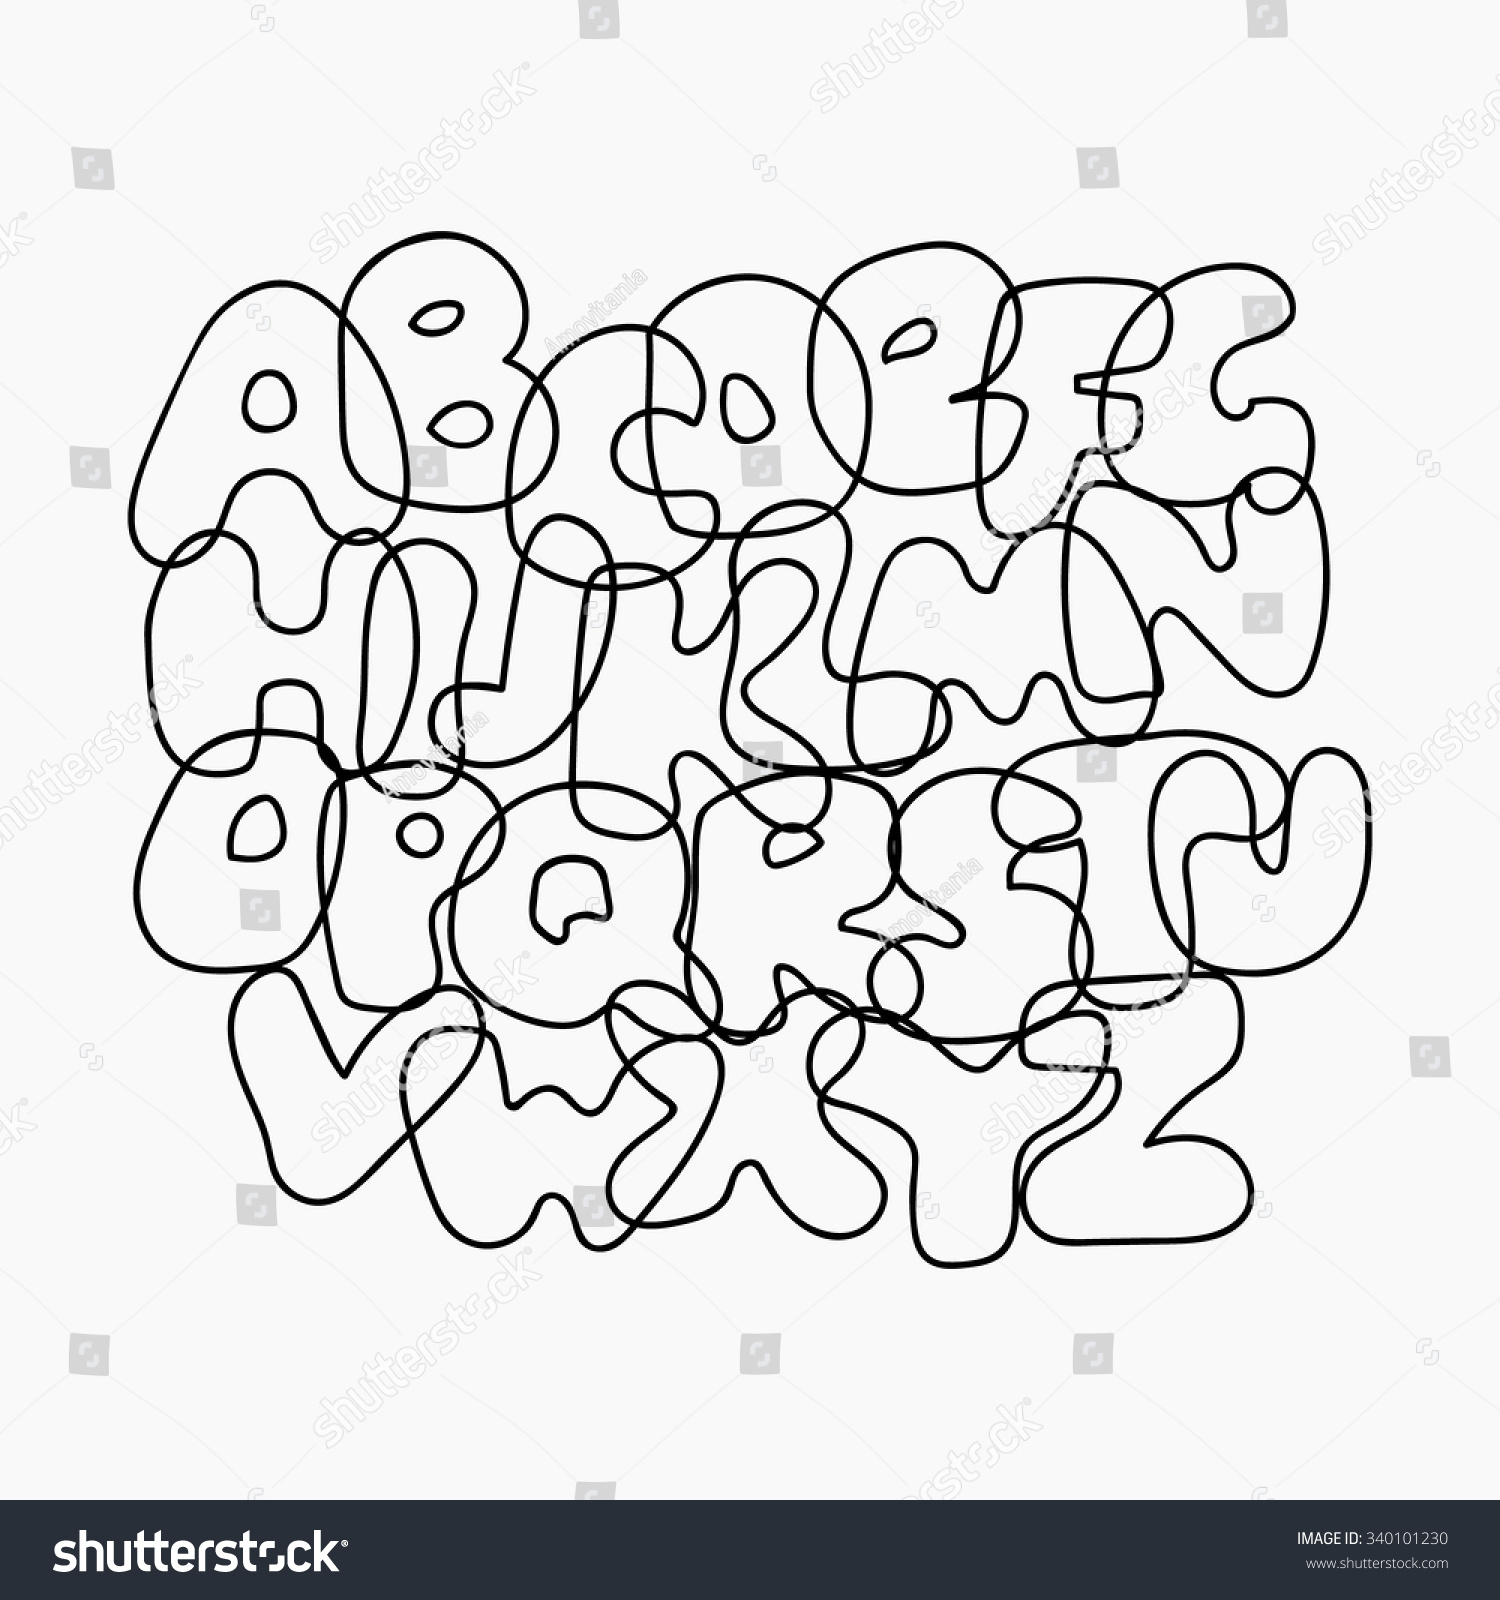 Funny Wire Alphabet Black Outline Letters Stock Vector (Royalty Free ...